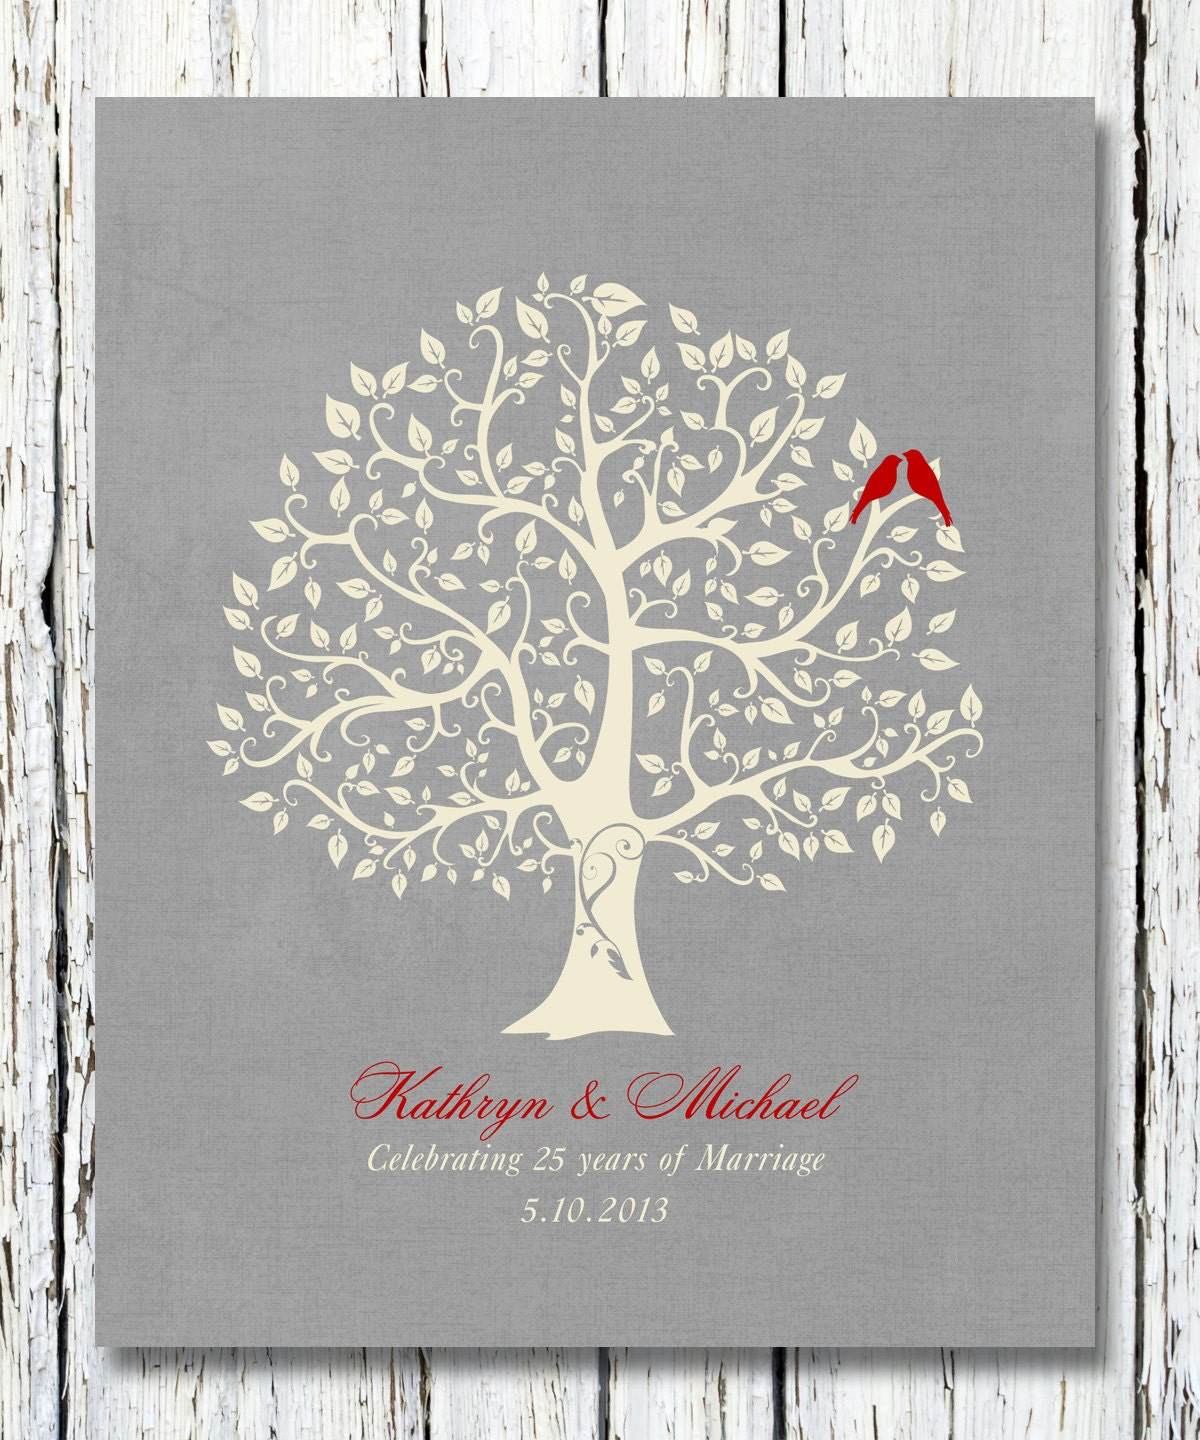 What Is The 25th Wedding Anniversary Gift: 25th Silver Wedding Anniversary Tree Gift Anniversary Gift